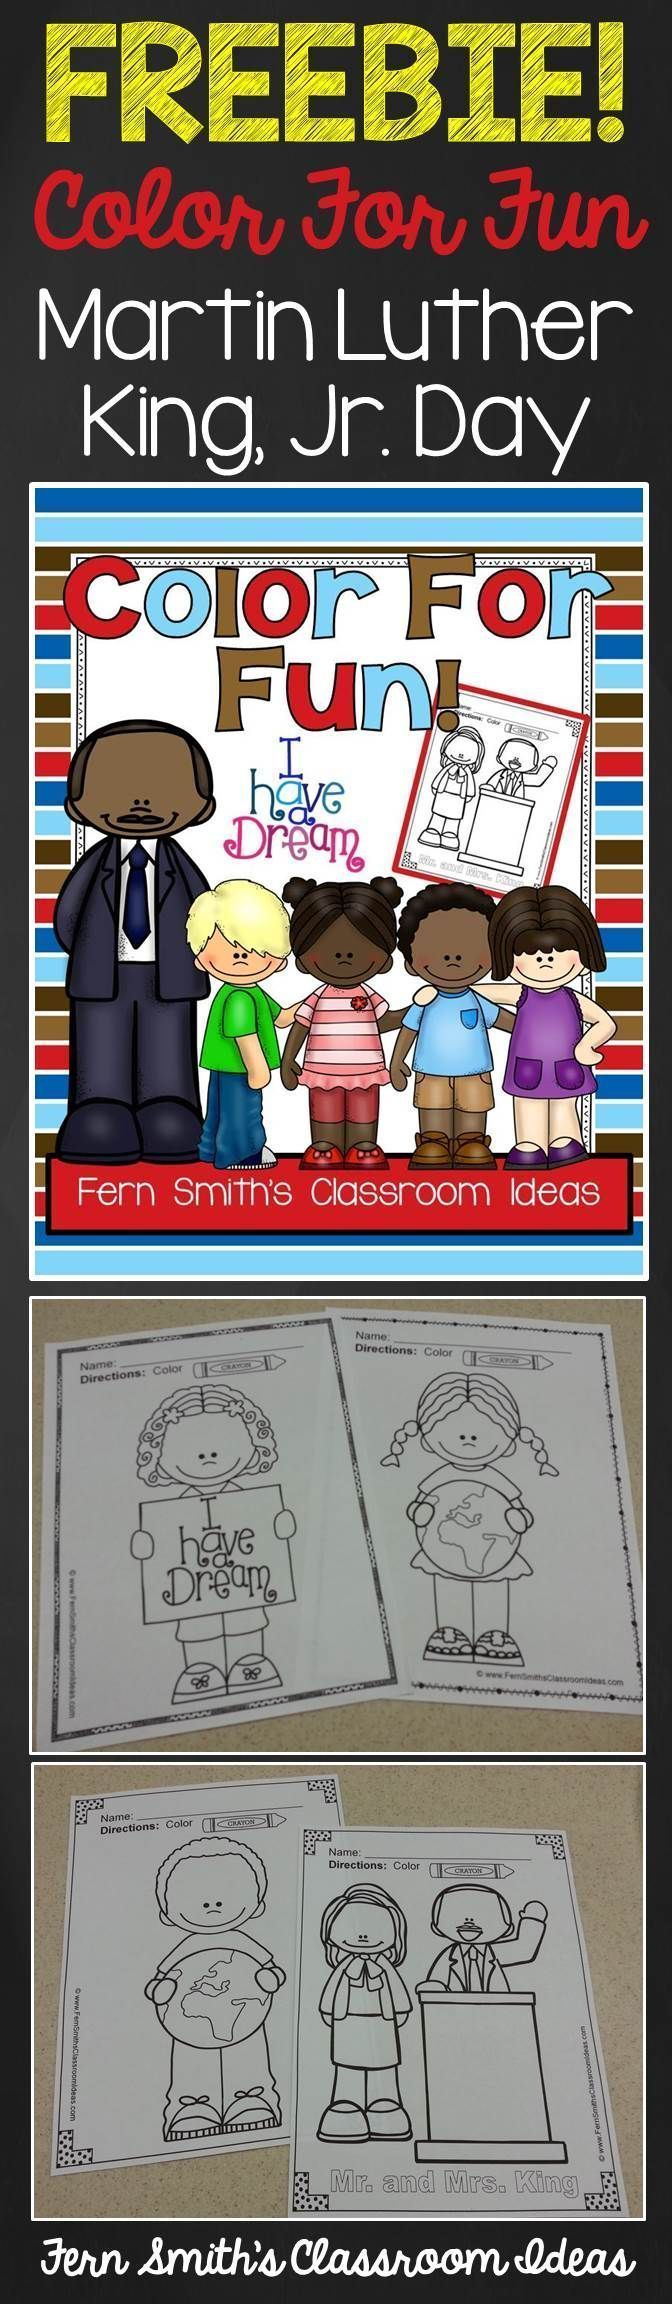 FREE Martin Luther King, Jr. Color For Fun Printable Coloring Pages ...